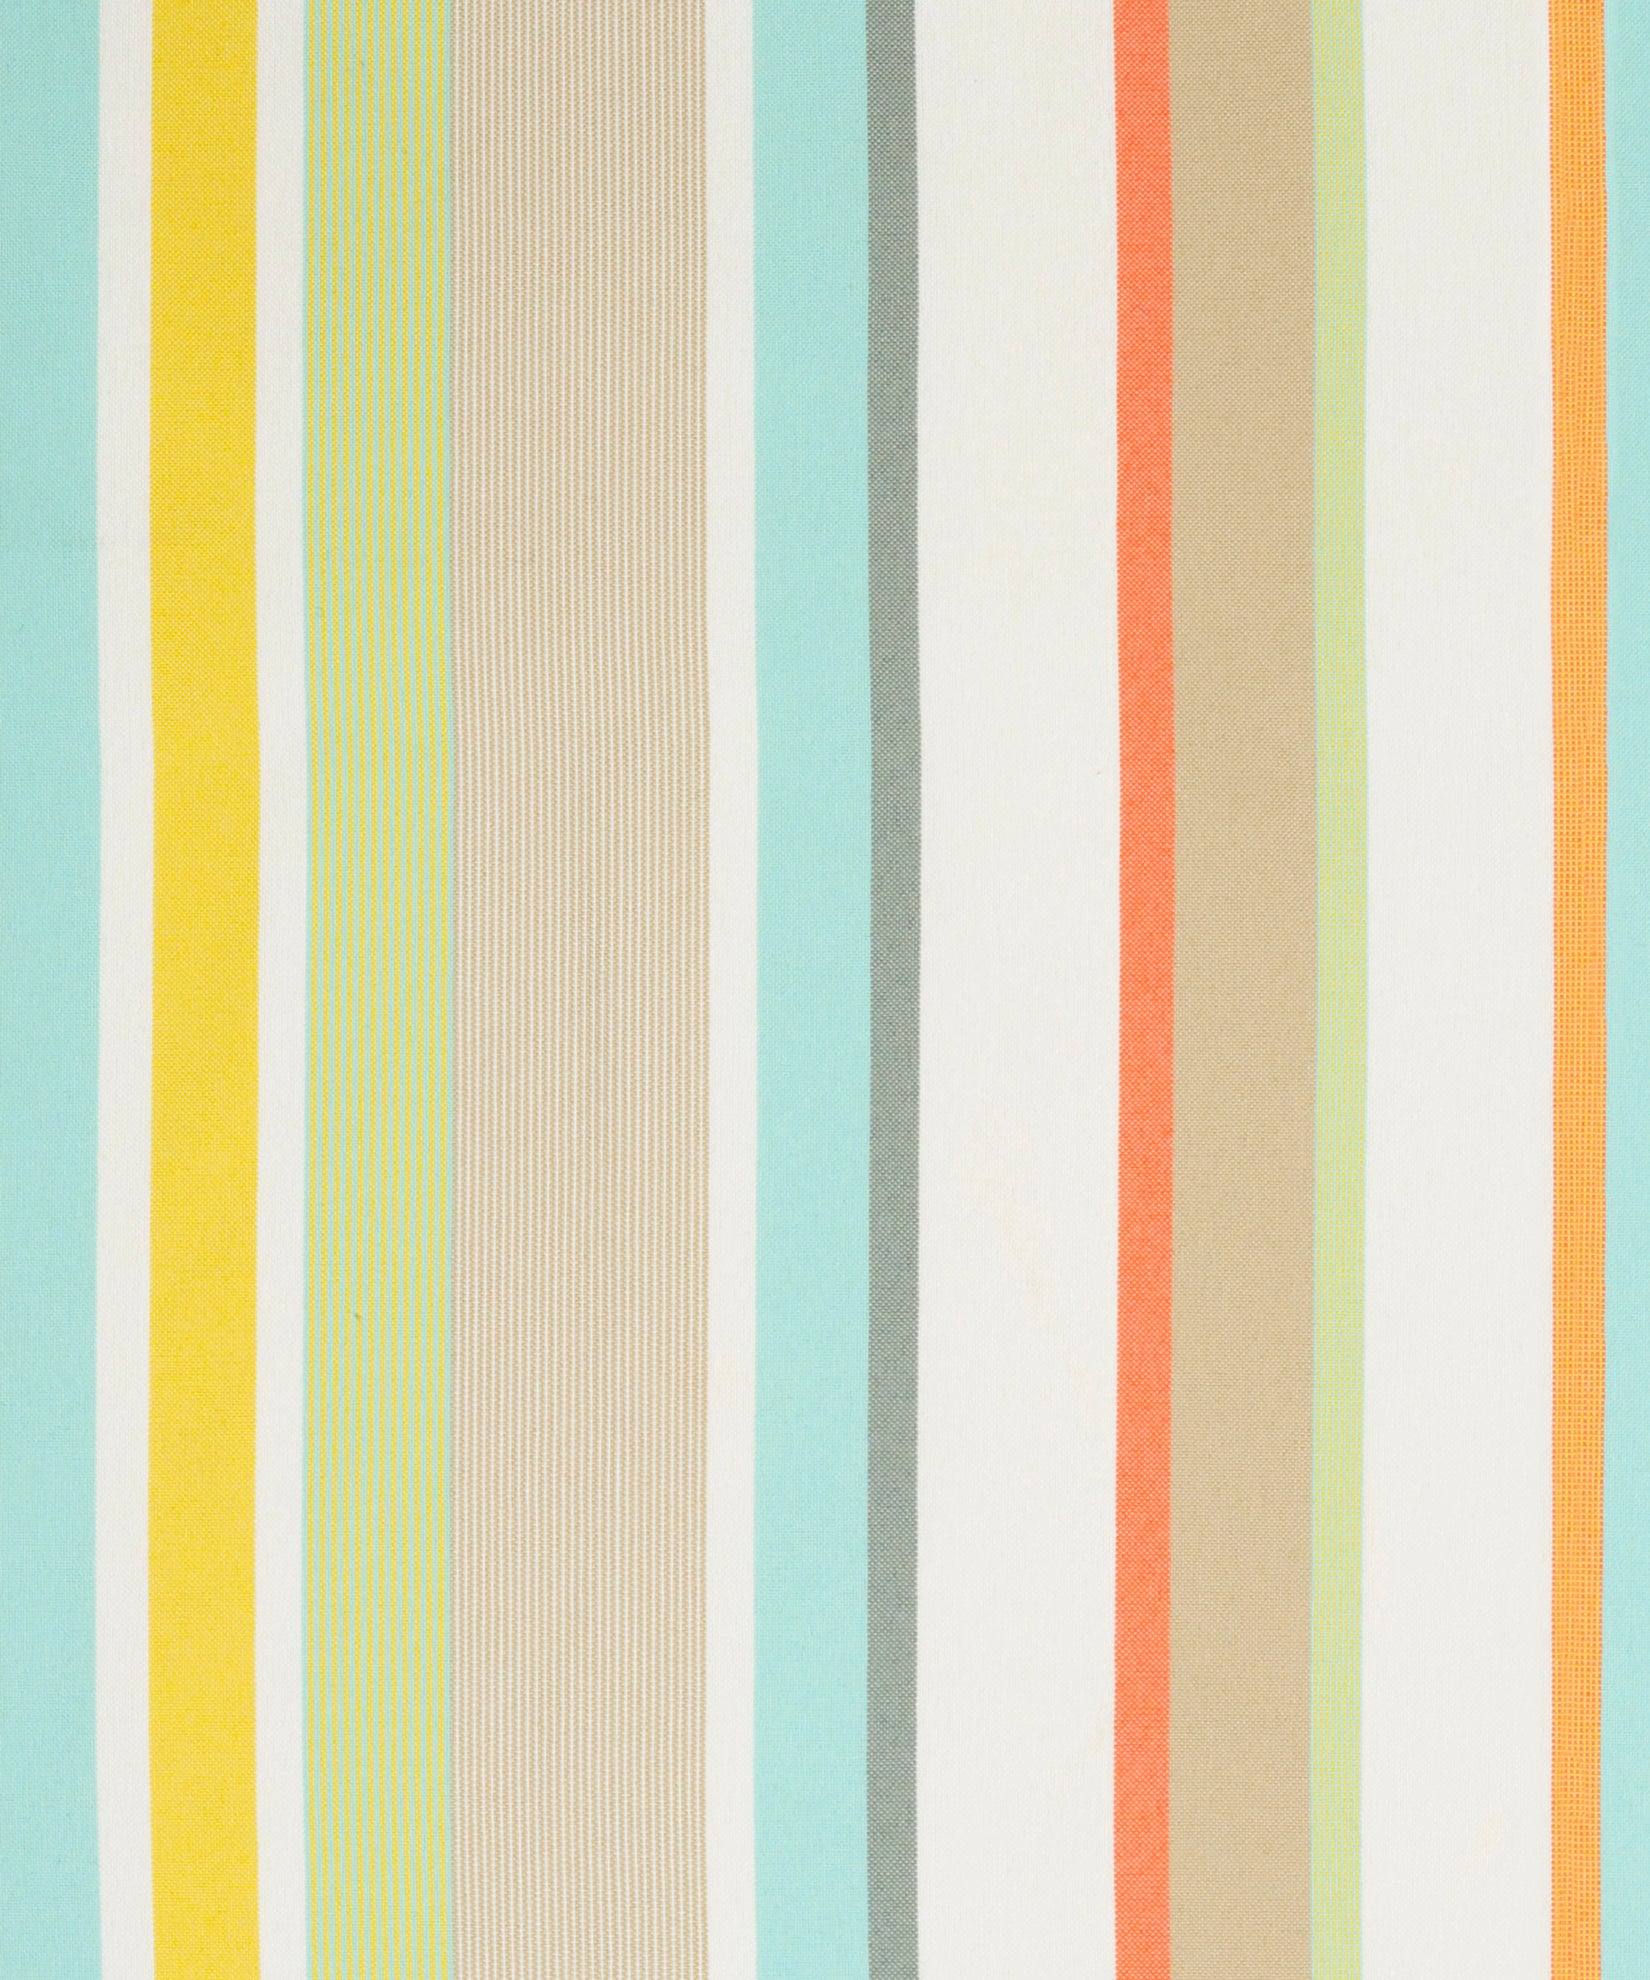 Tropicale - Corsis Stripe Tropicale Fabric